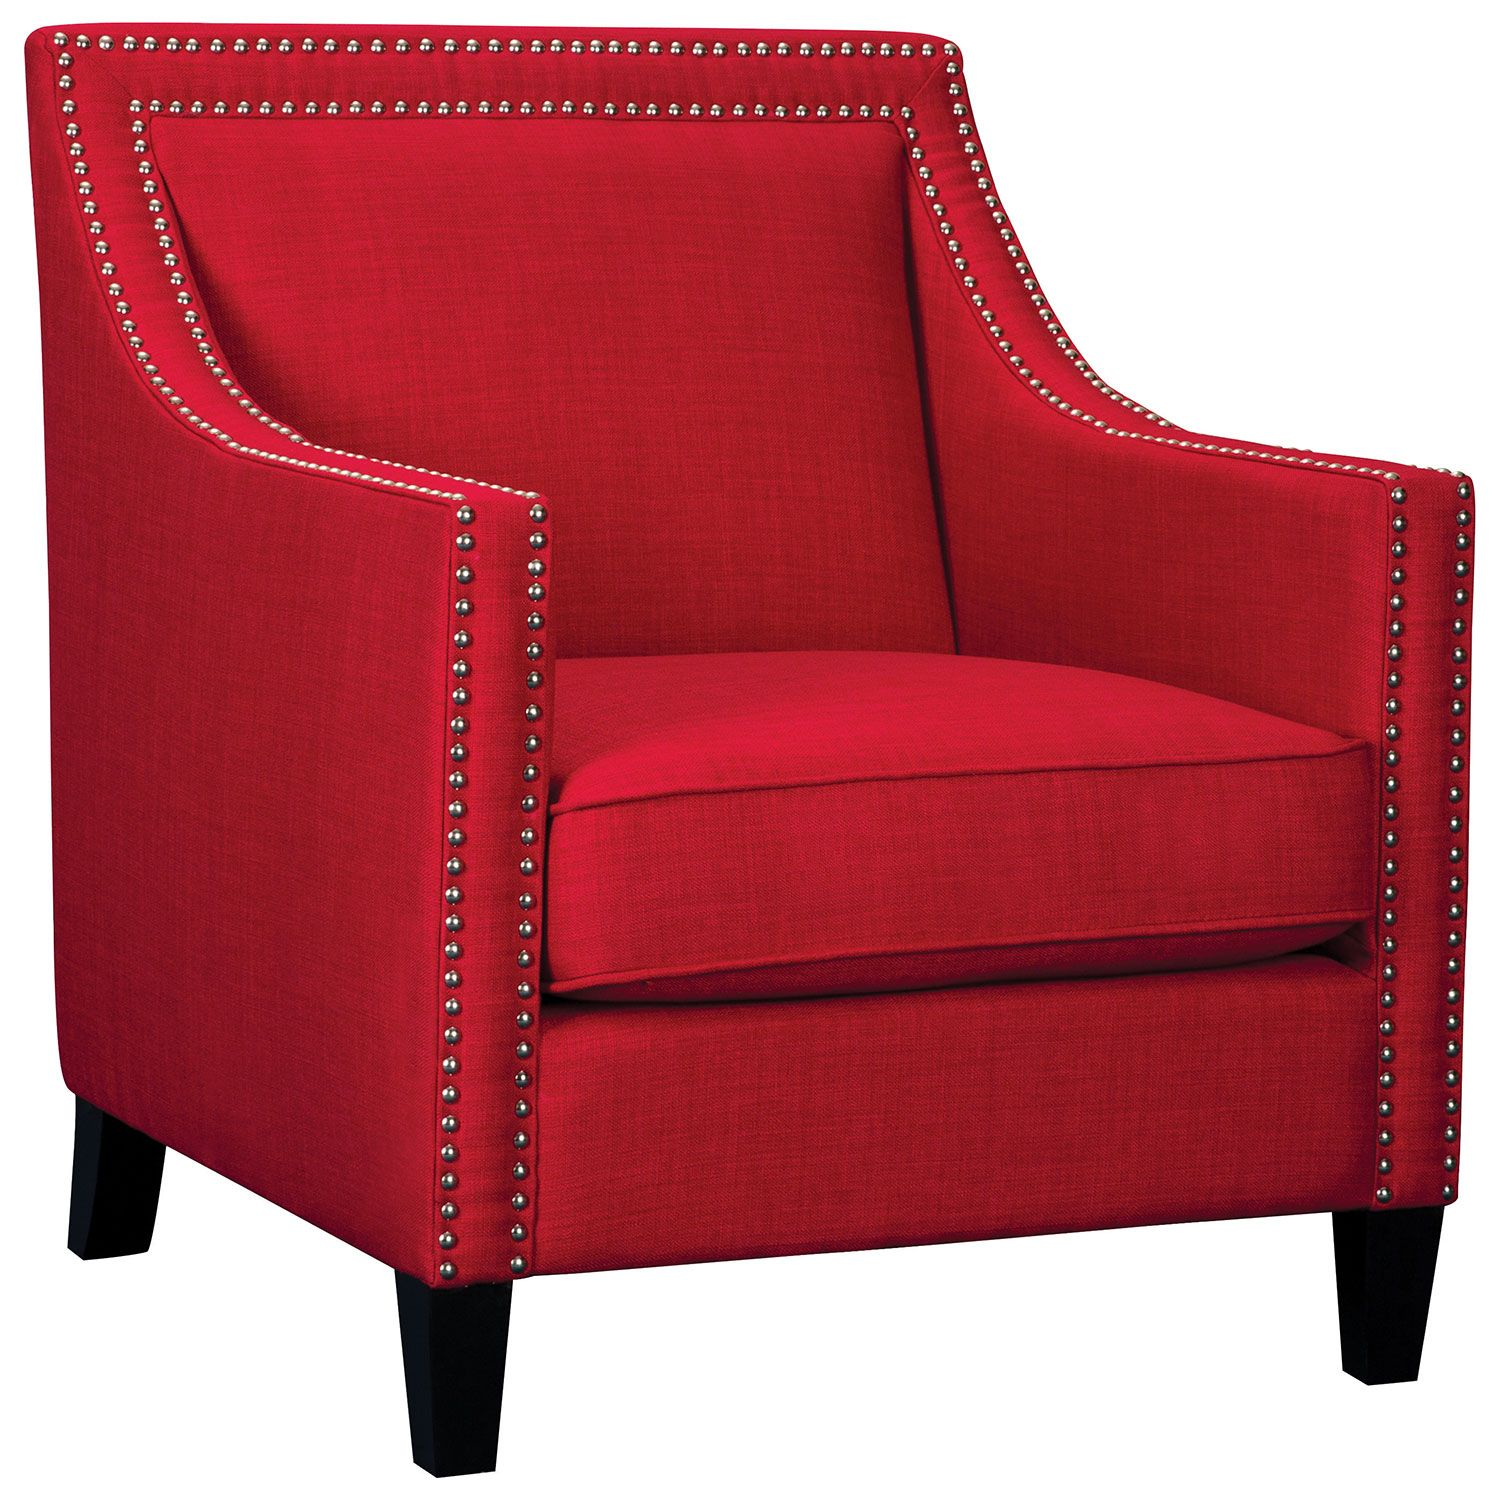 Charmant Erica Contemporary Accent Chair   Red : Accent Chairs   Best Buy Canada